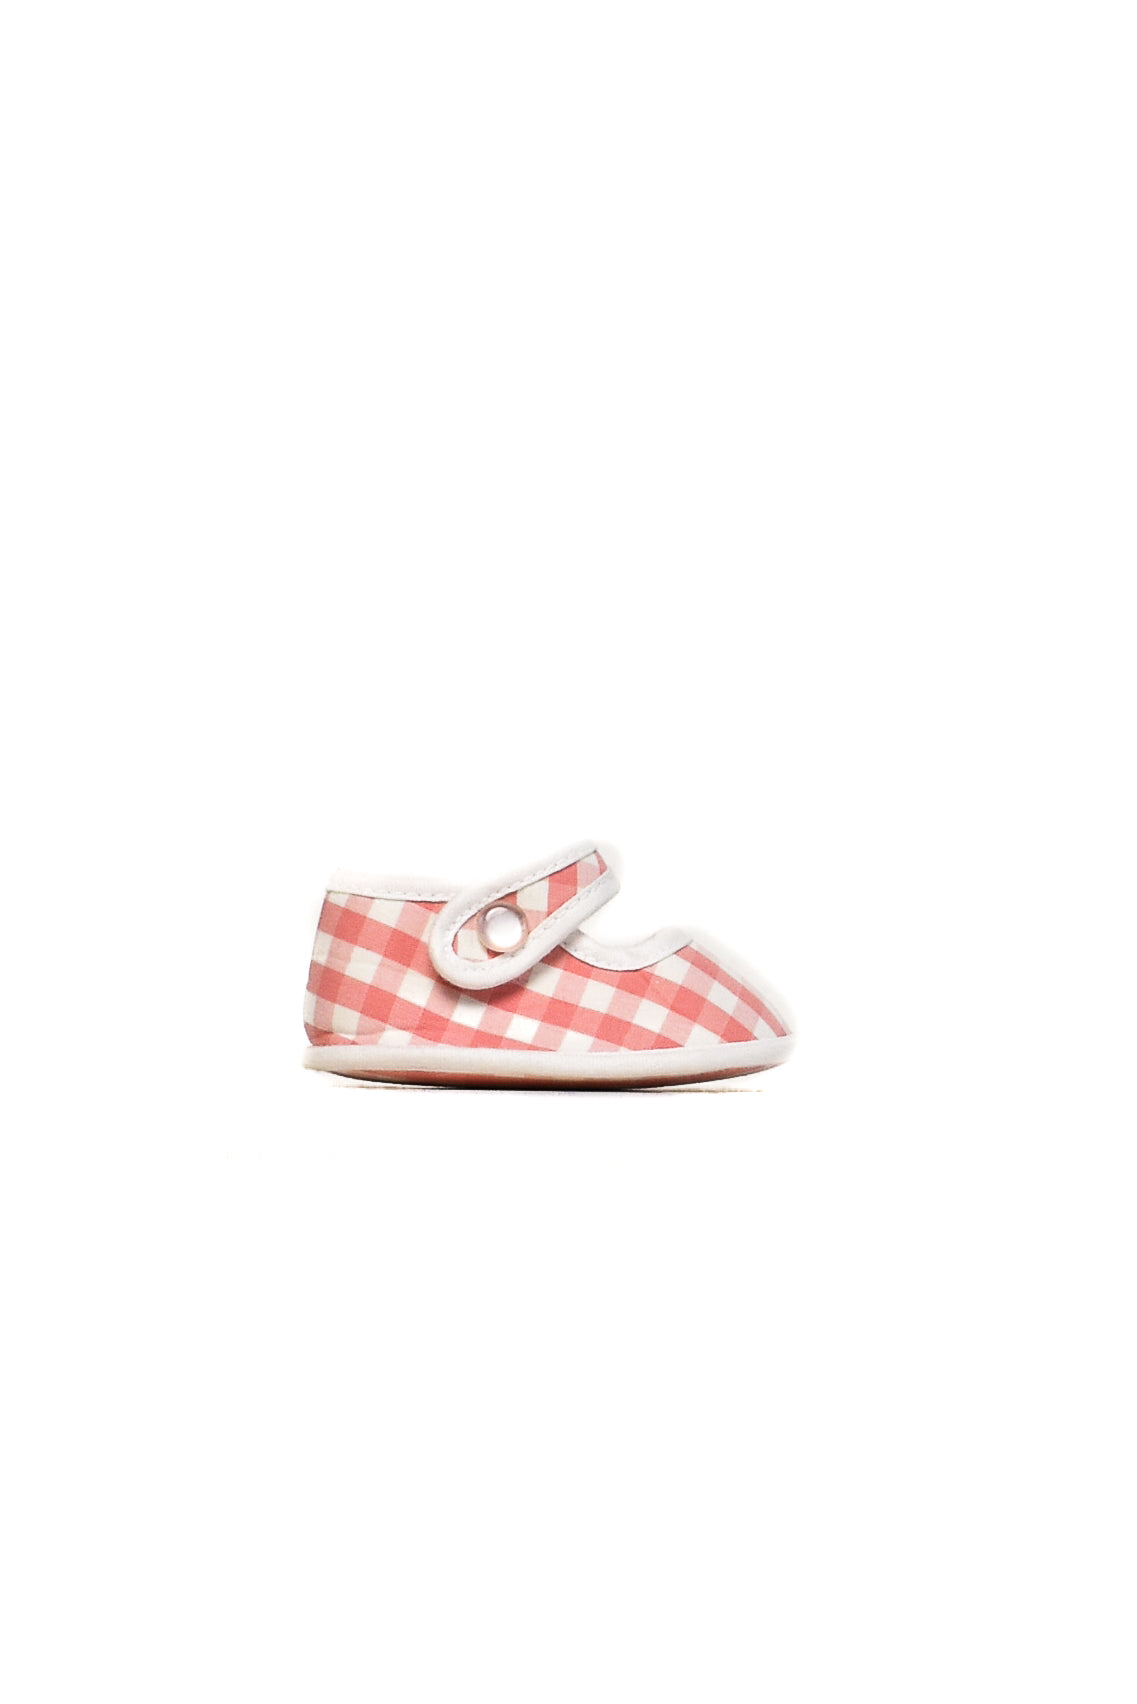 10007552 Jacadi Baby~ Shoes 0-3M at Retykle